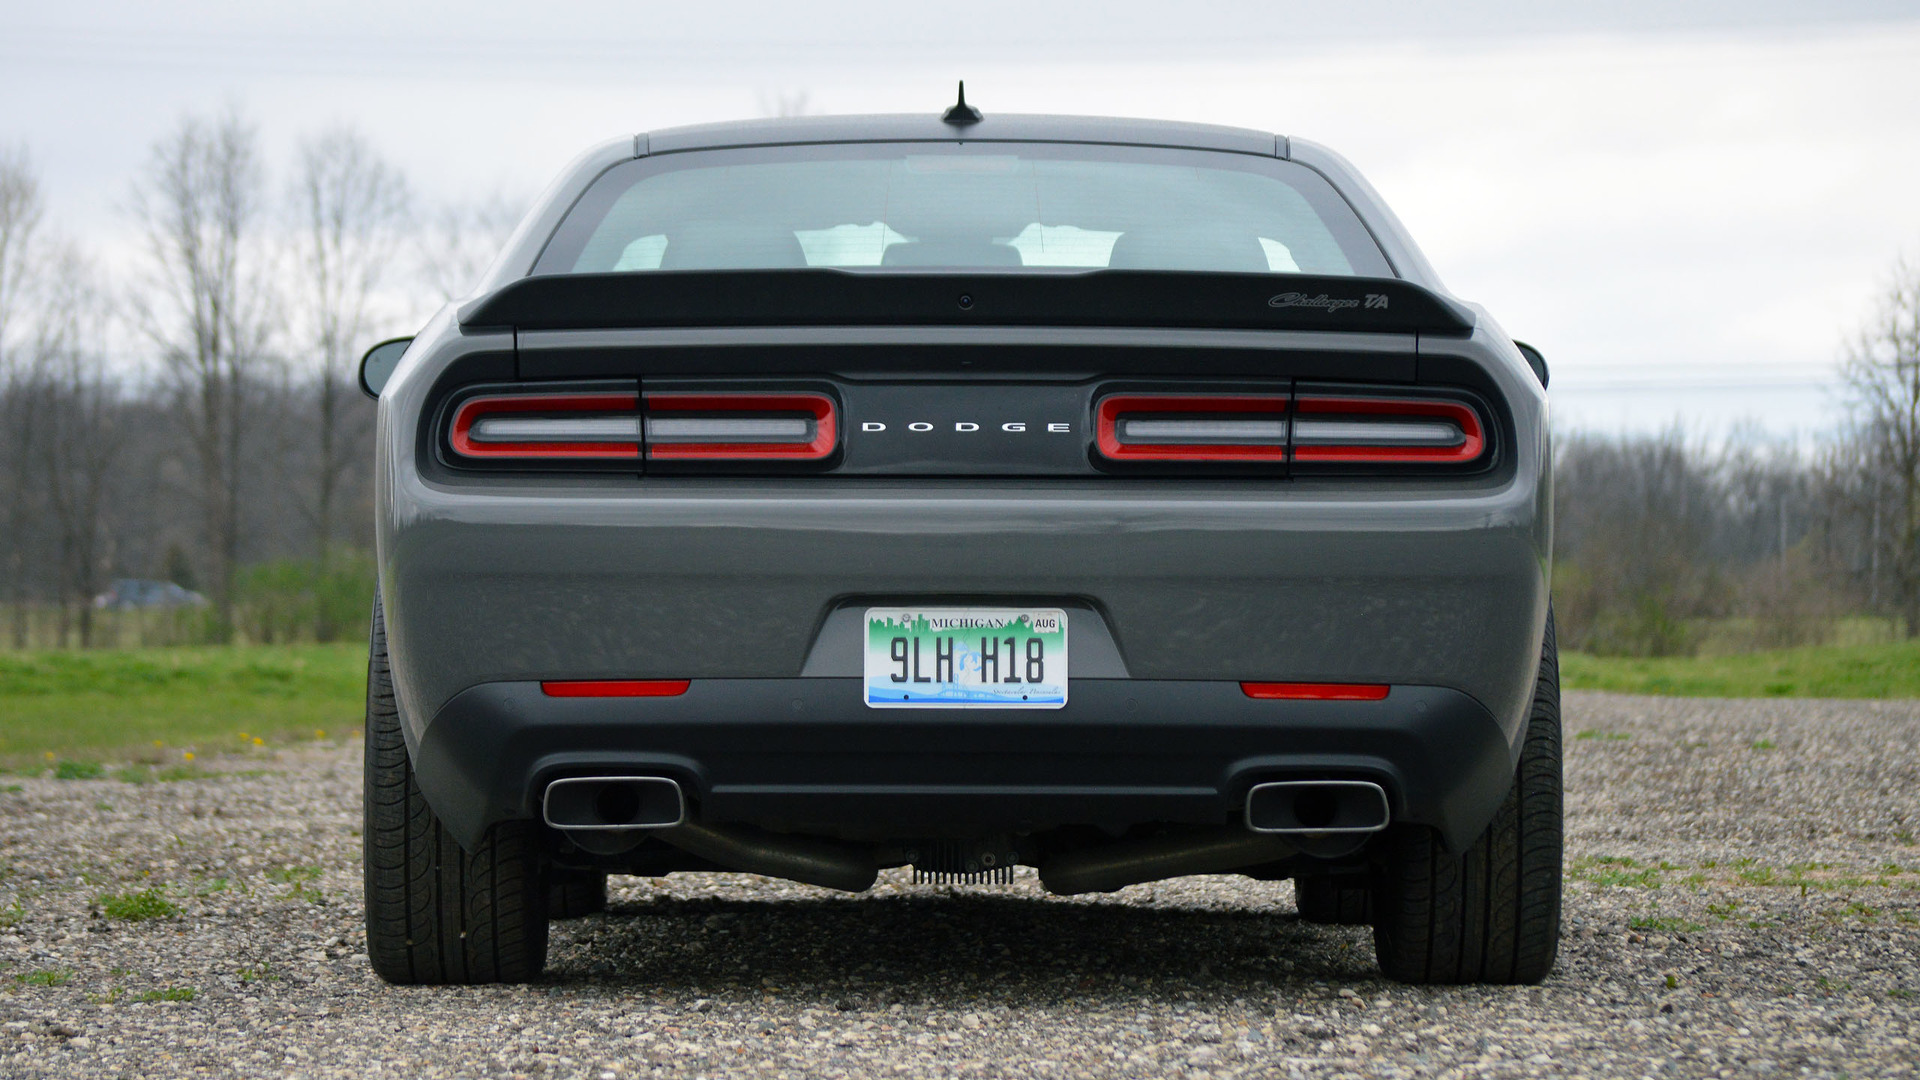 2017 Dodge Challenger T/A 392 Review: Who Needs A Demon?